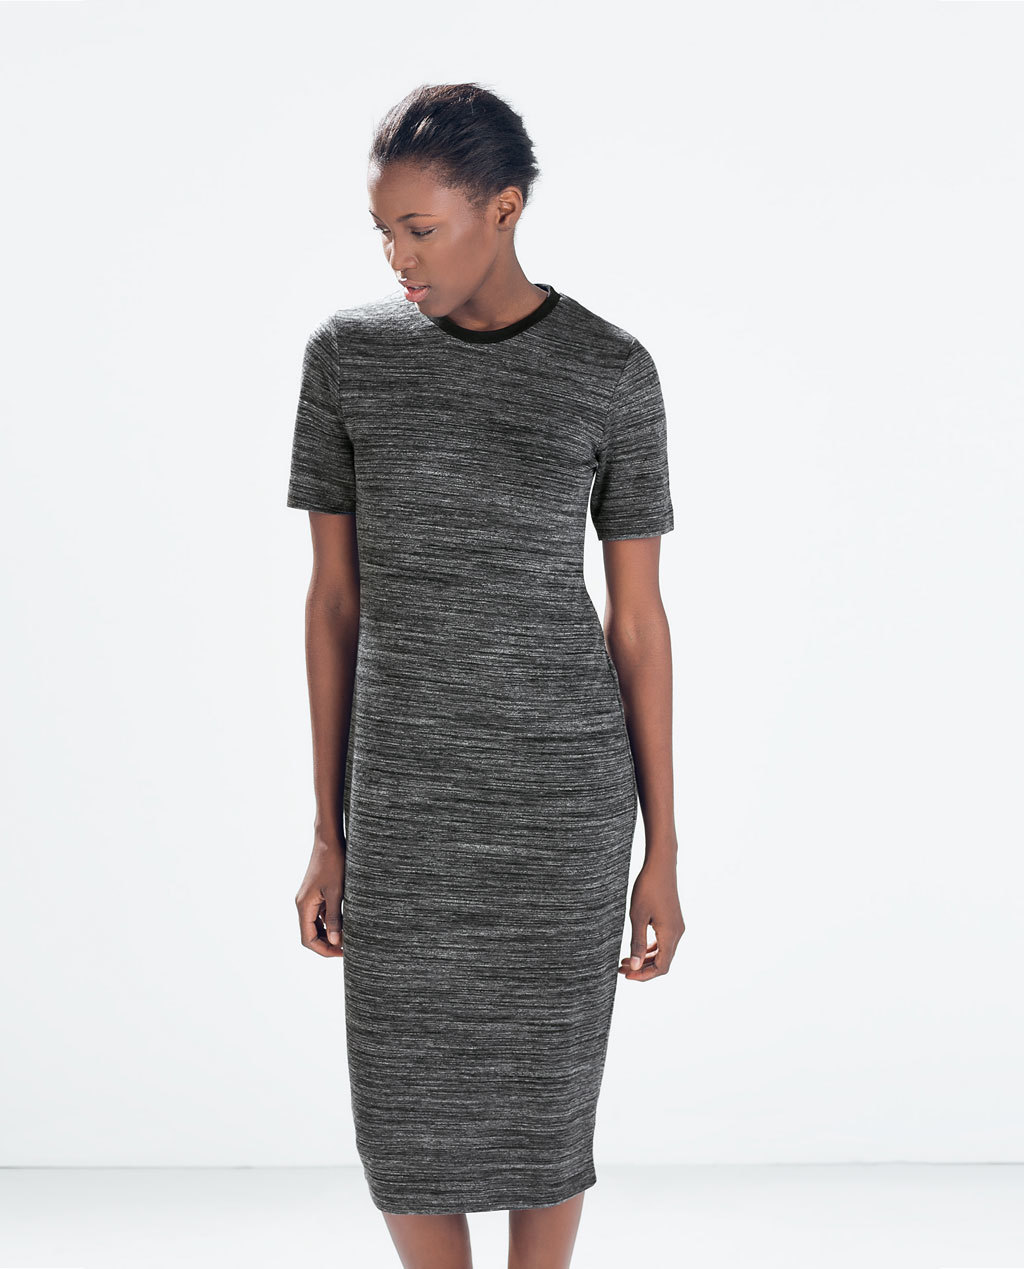 Long Dress - length: below the knee; fit: tight; style: bodycon; predominant colour: charcoal; occasions: casual, evening, creative work; fibres: viscose/rayon - stretch; neckline: crew; sleeve length: short sleeve; sleeve style: standard; texture group: jersey - clingy; pattern type: fabric; pattern size: standard; pattern: marl; season: a/w 2014; wardrobe: basic